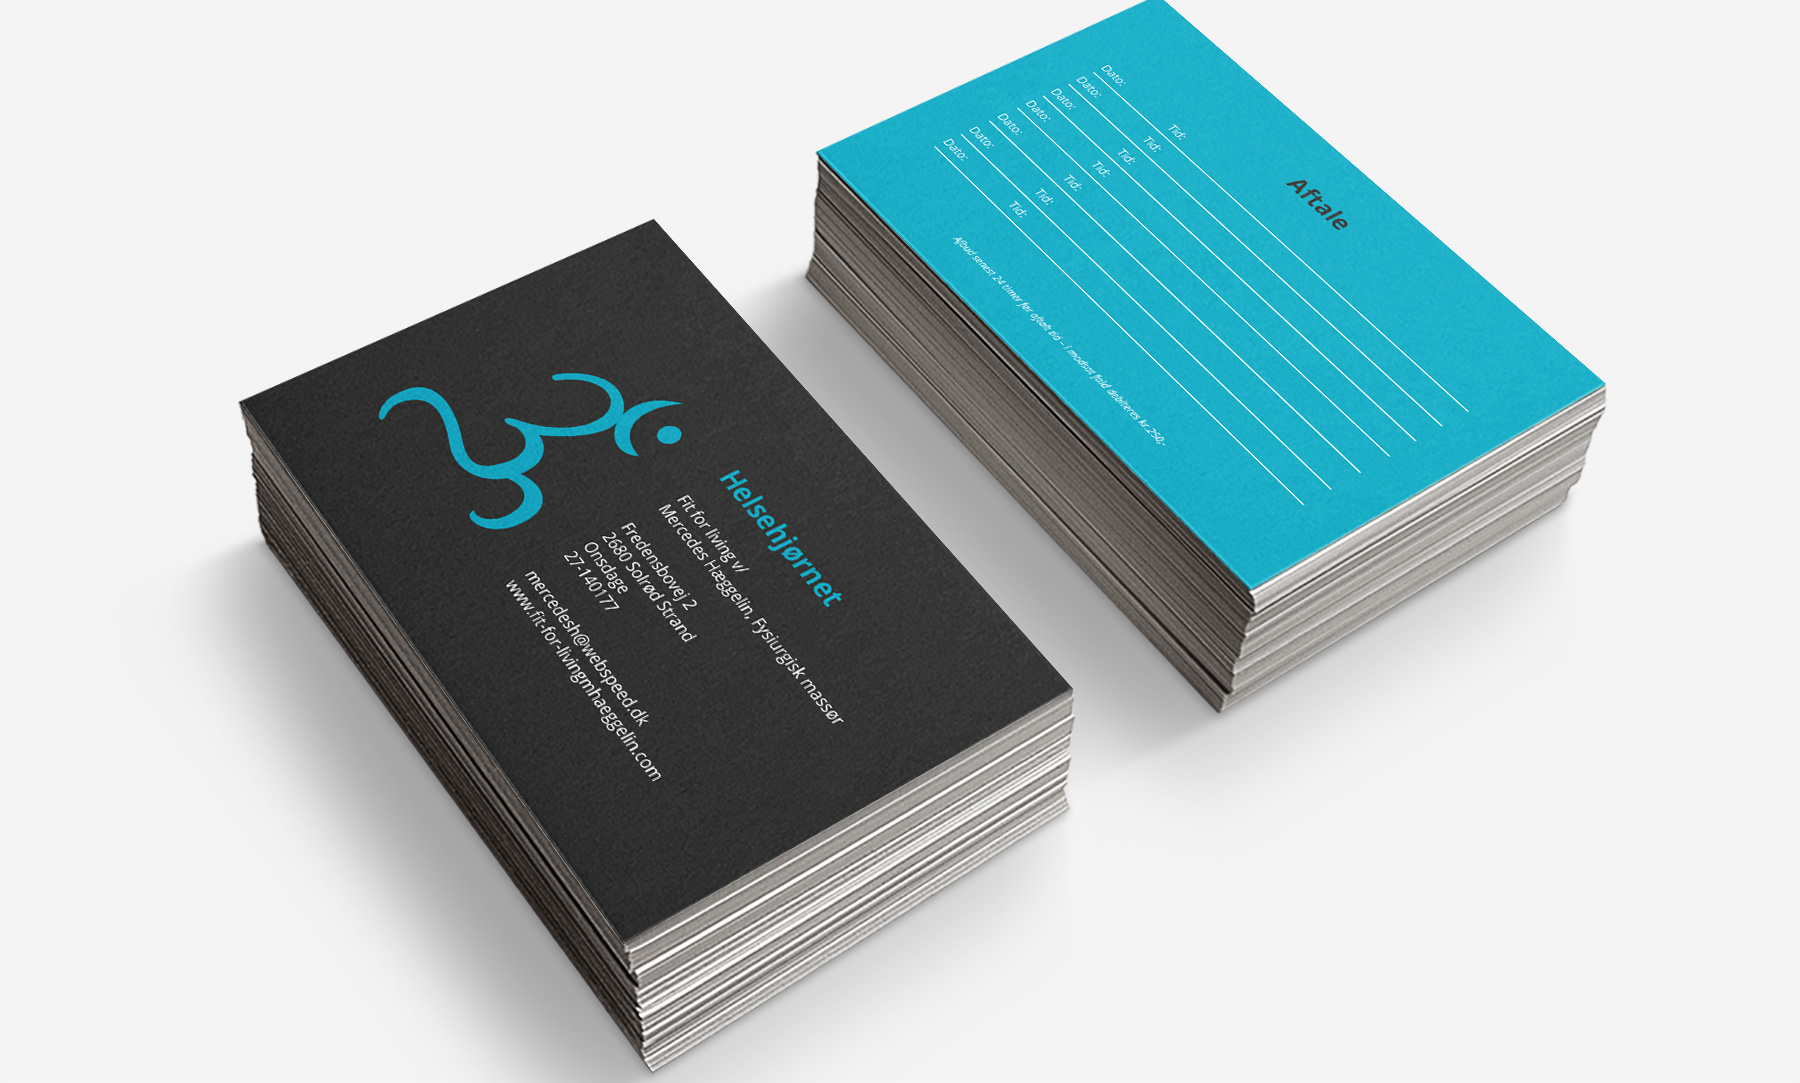 Fit For Living: Business cards